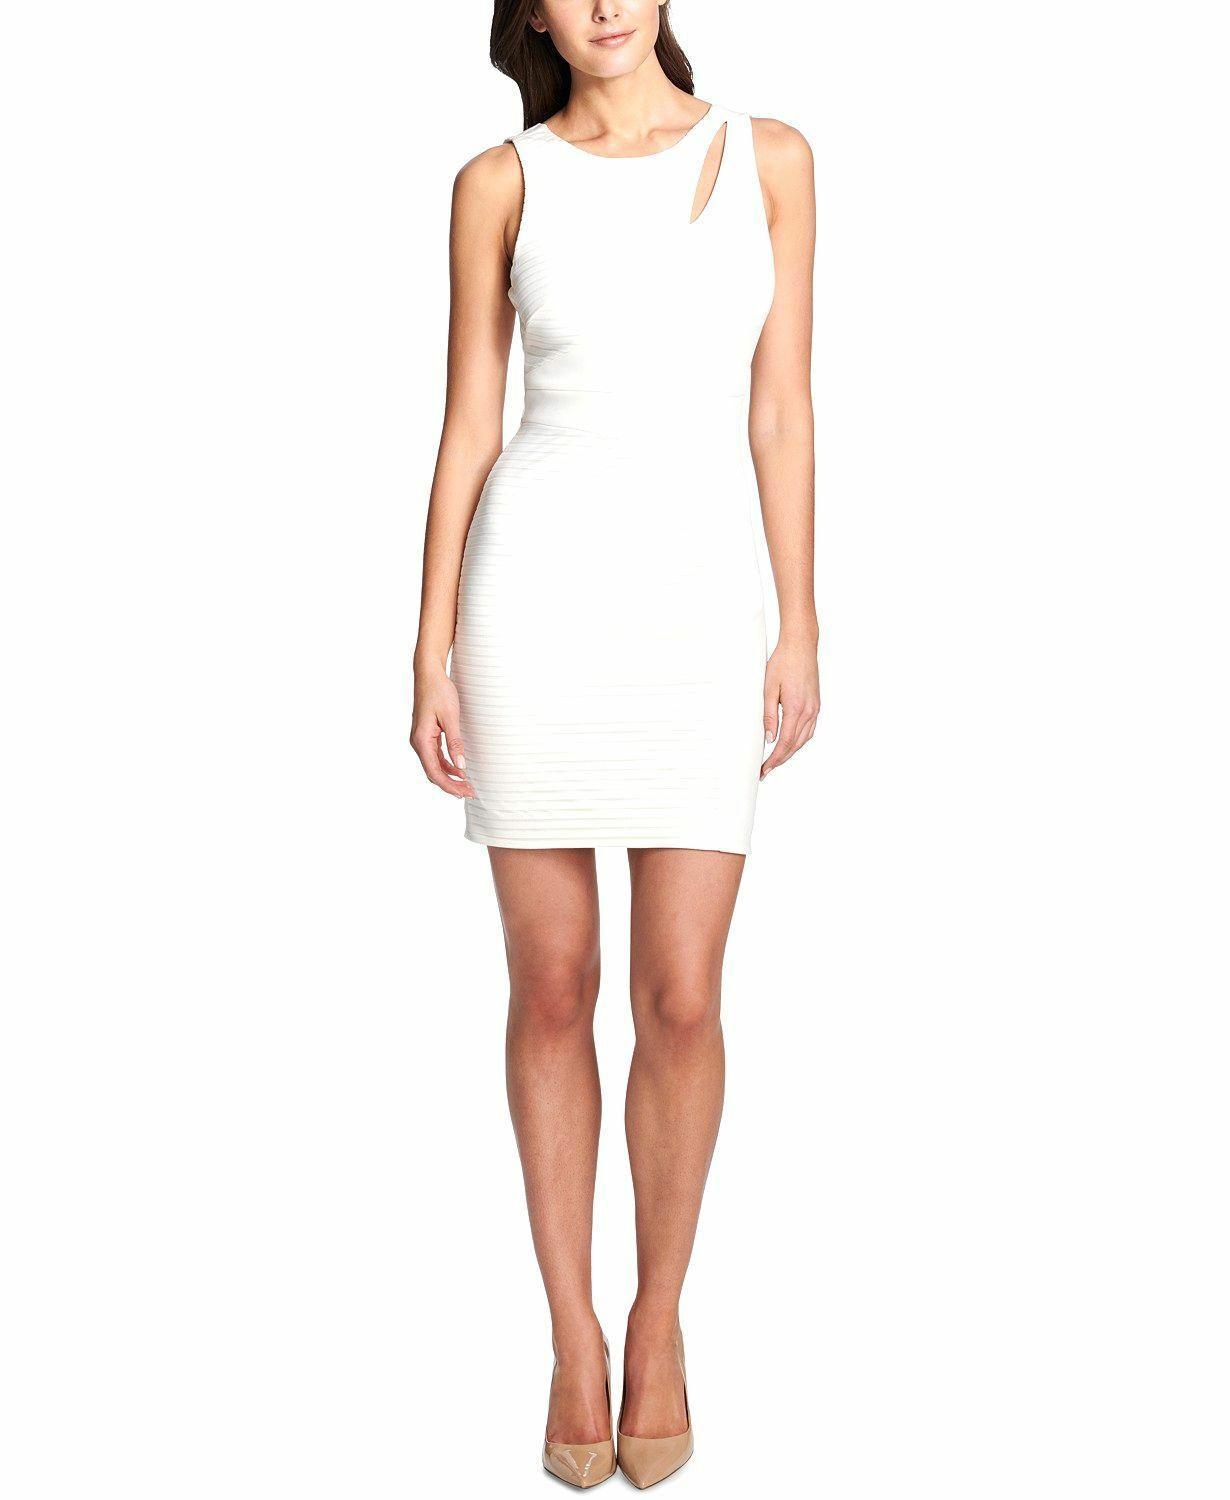 NWT  GUESS WOMEN'S SOLID WHITE CUTOUT SLEEVELESS BODY-CON SHORT DRESS SIZE 8